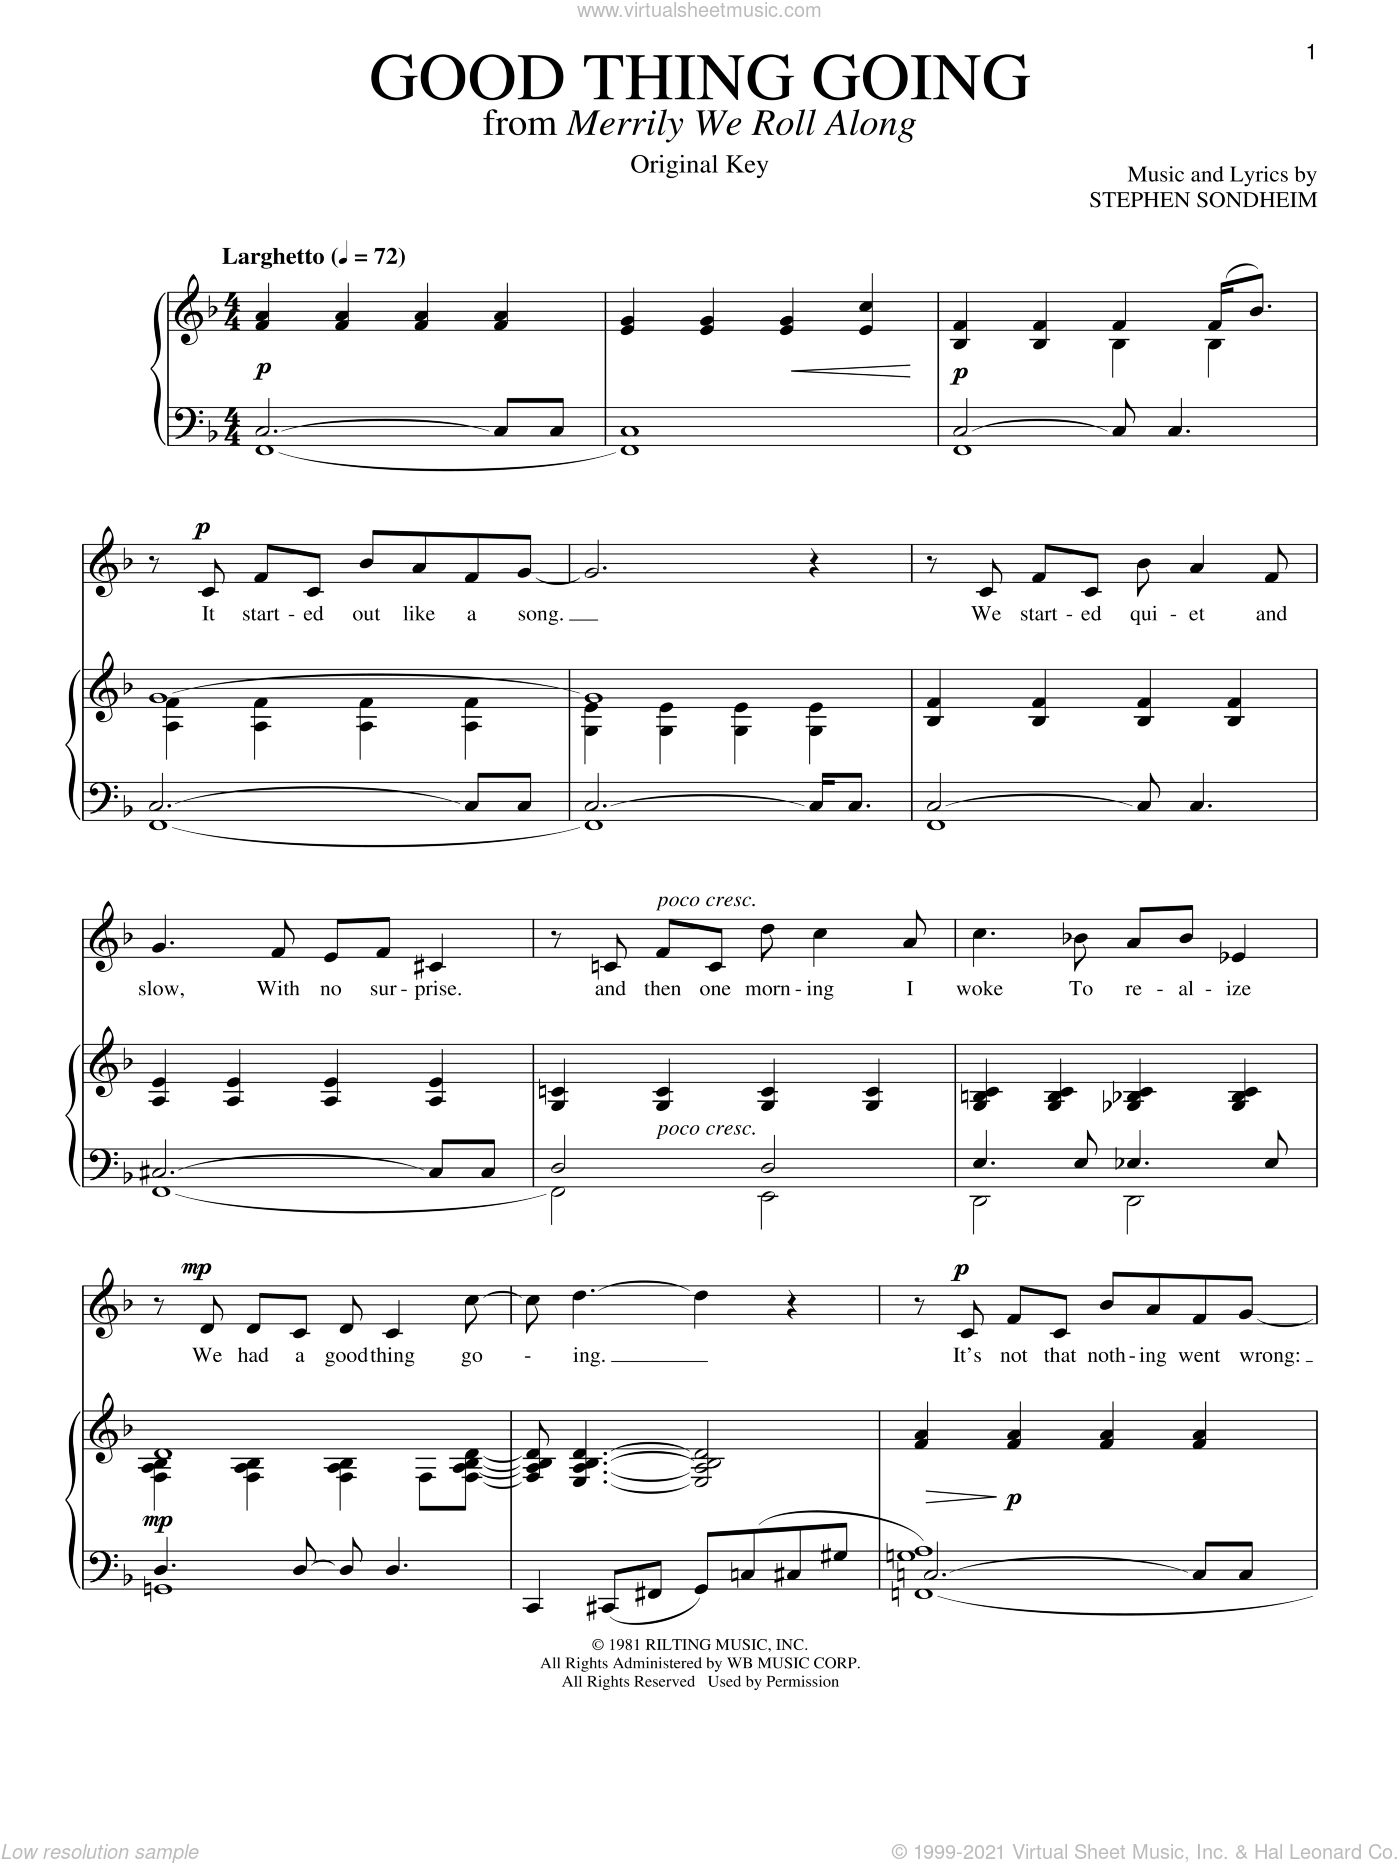 Good Thing Going sheet music for voice and piano by Stephen Sondheim. Score Image Preview.